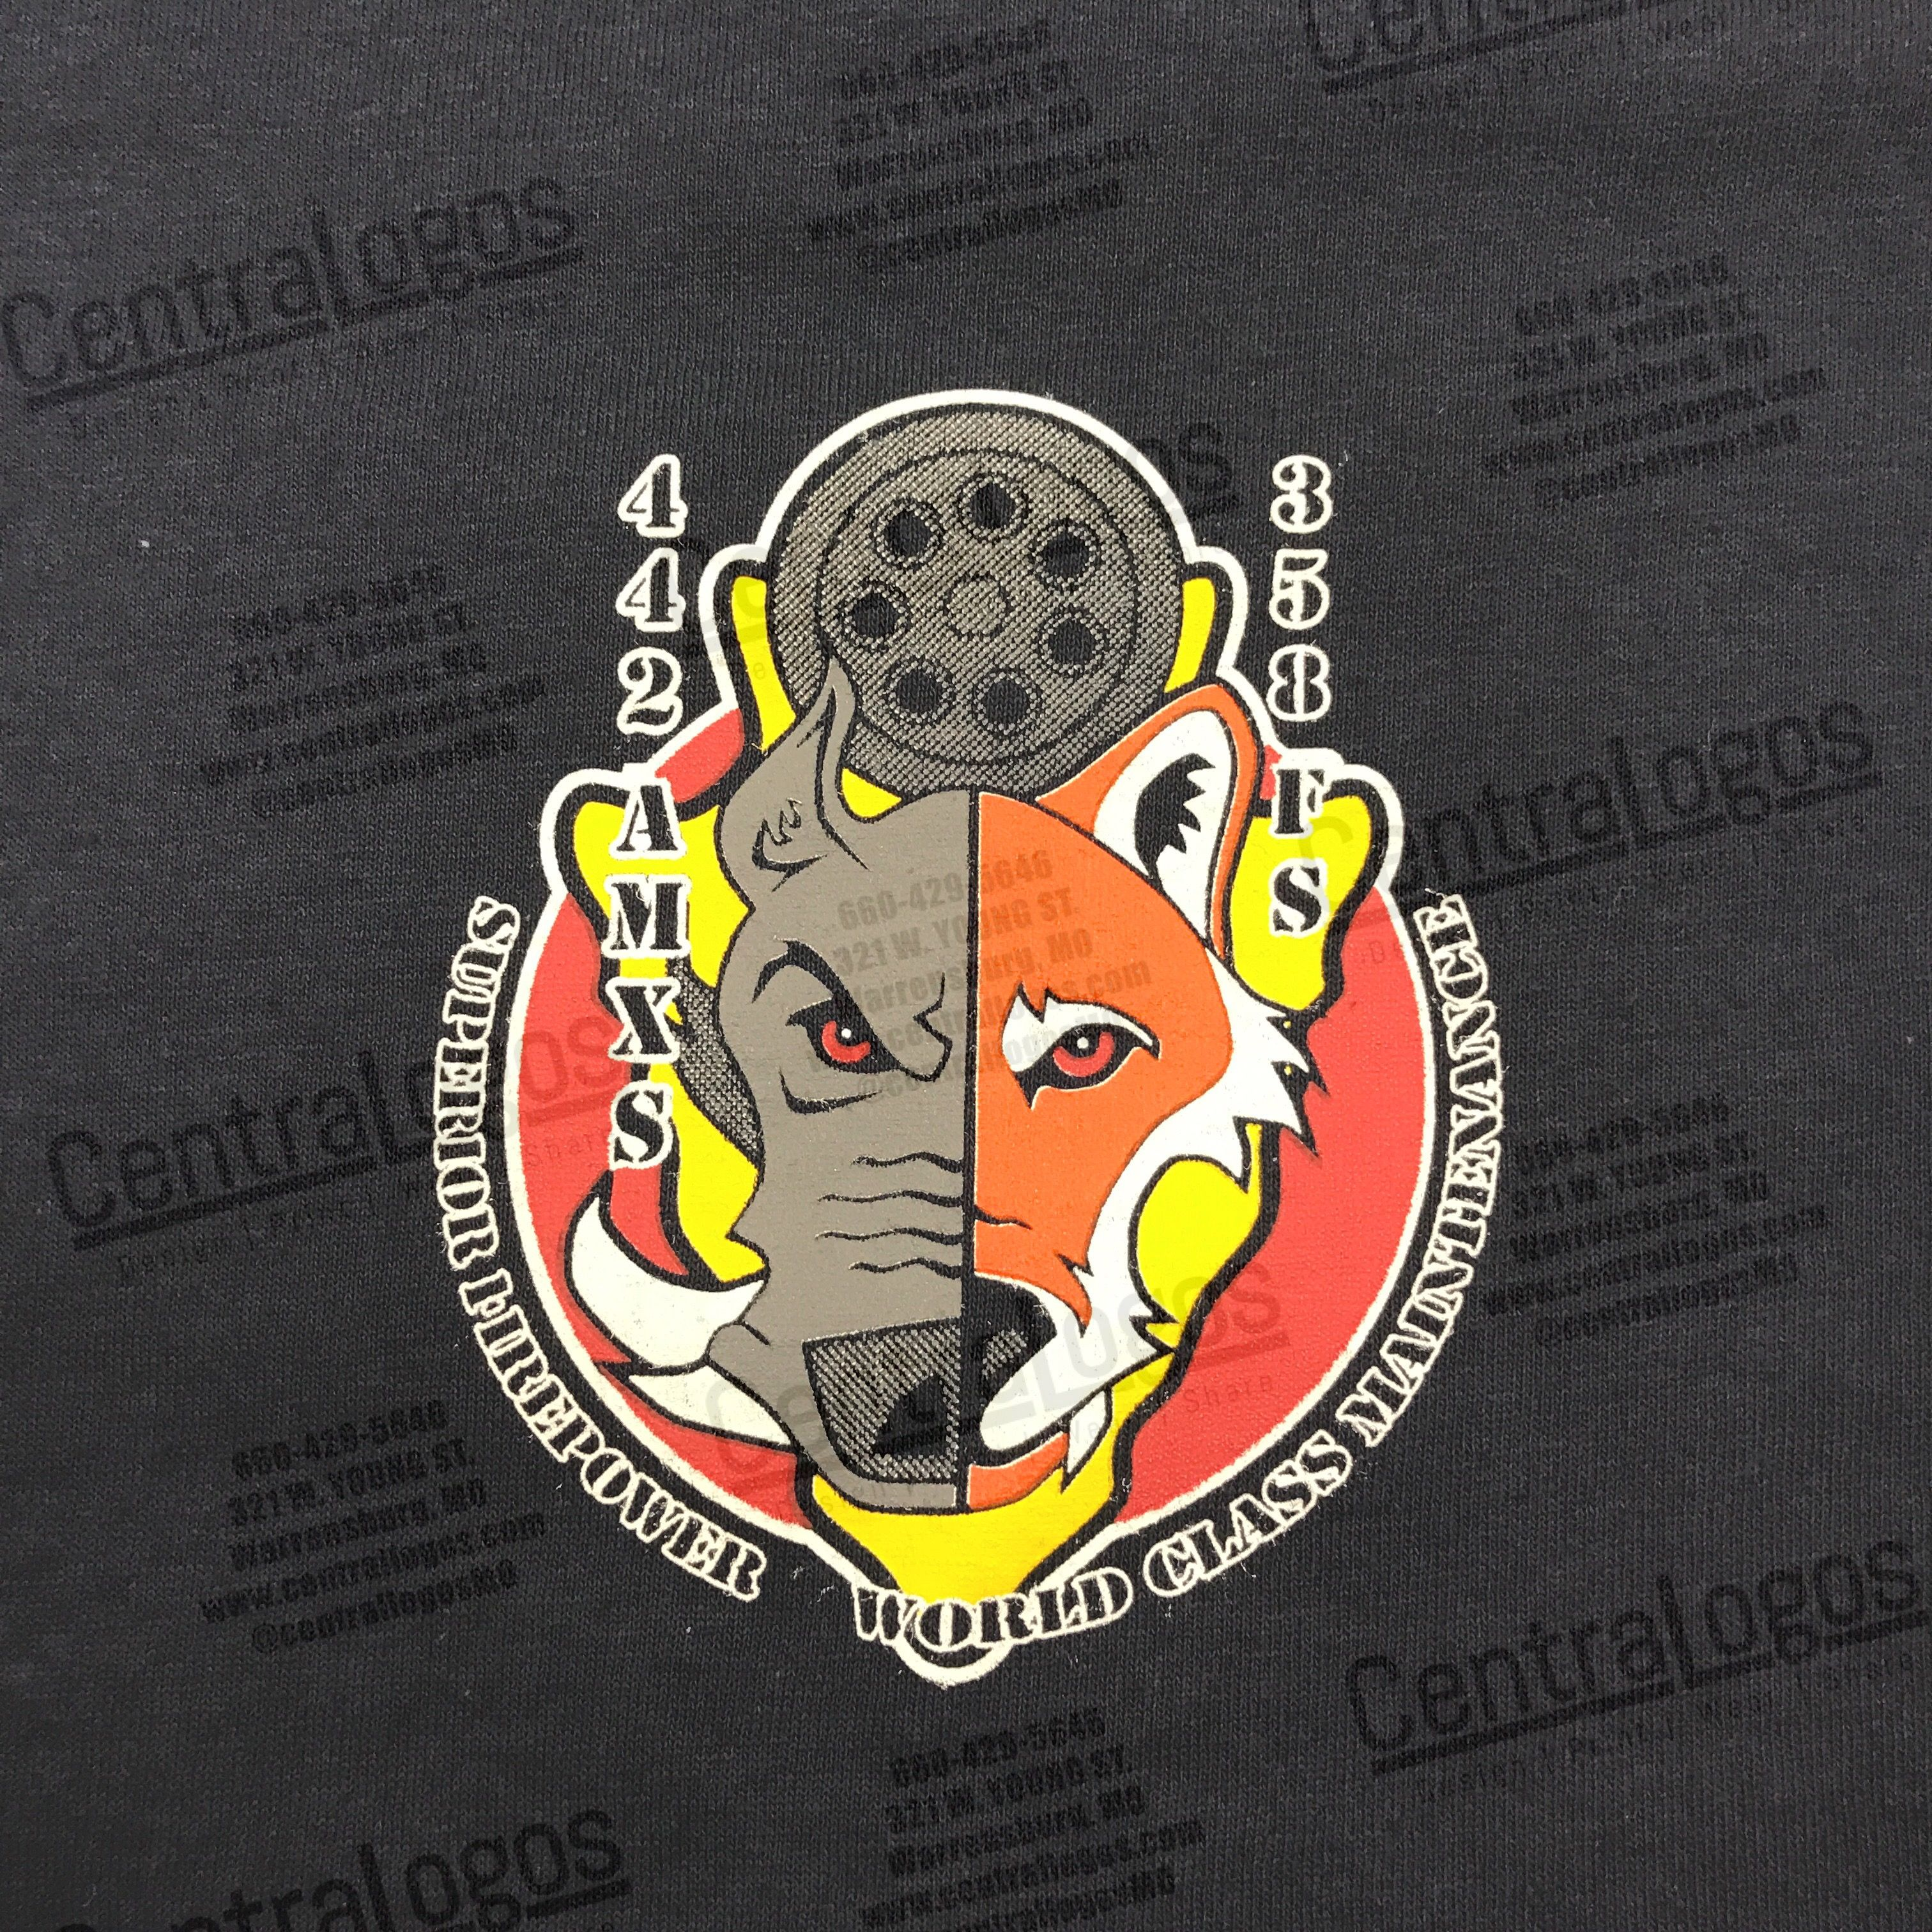 Shirts Printed For The 442nd AMXS And 358th Fighter Squadron CentrallogosMO Customscreenprinting